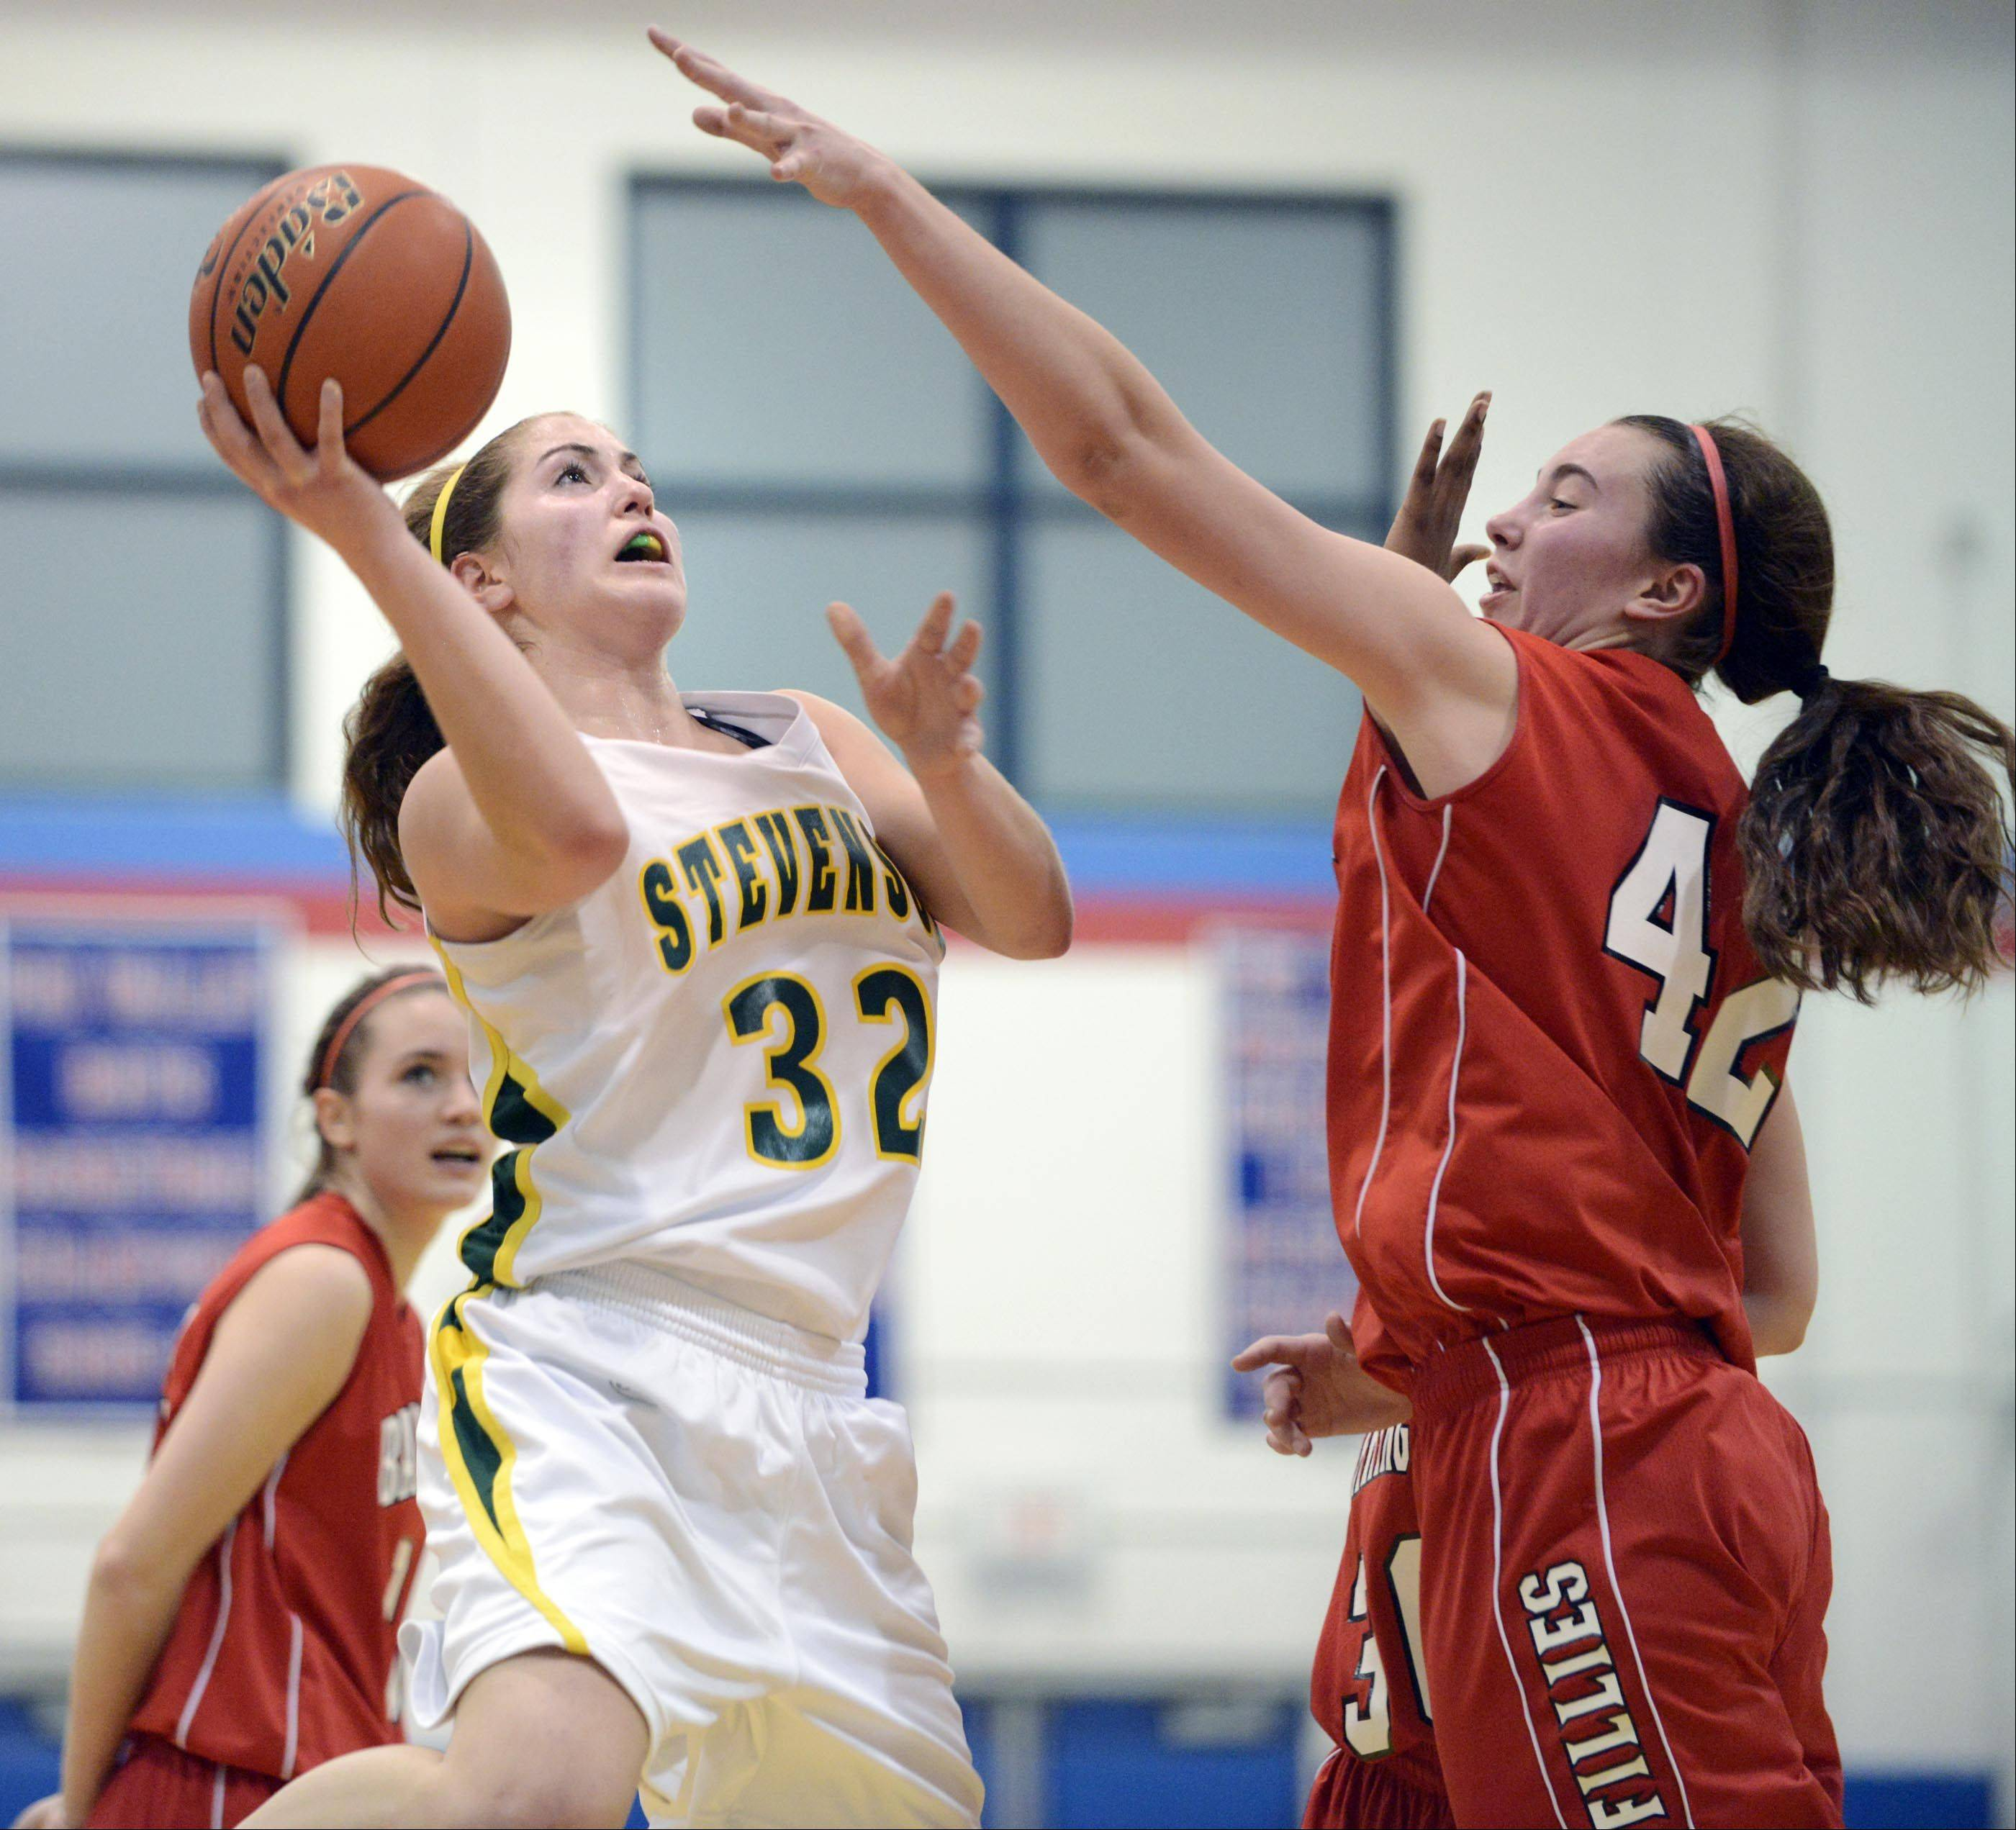 Stevenson's Sophia Way shoots over Barrington's Megan Talbot in the 31st Charger Classic at Dundee-Crown on Monday.